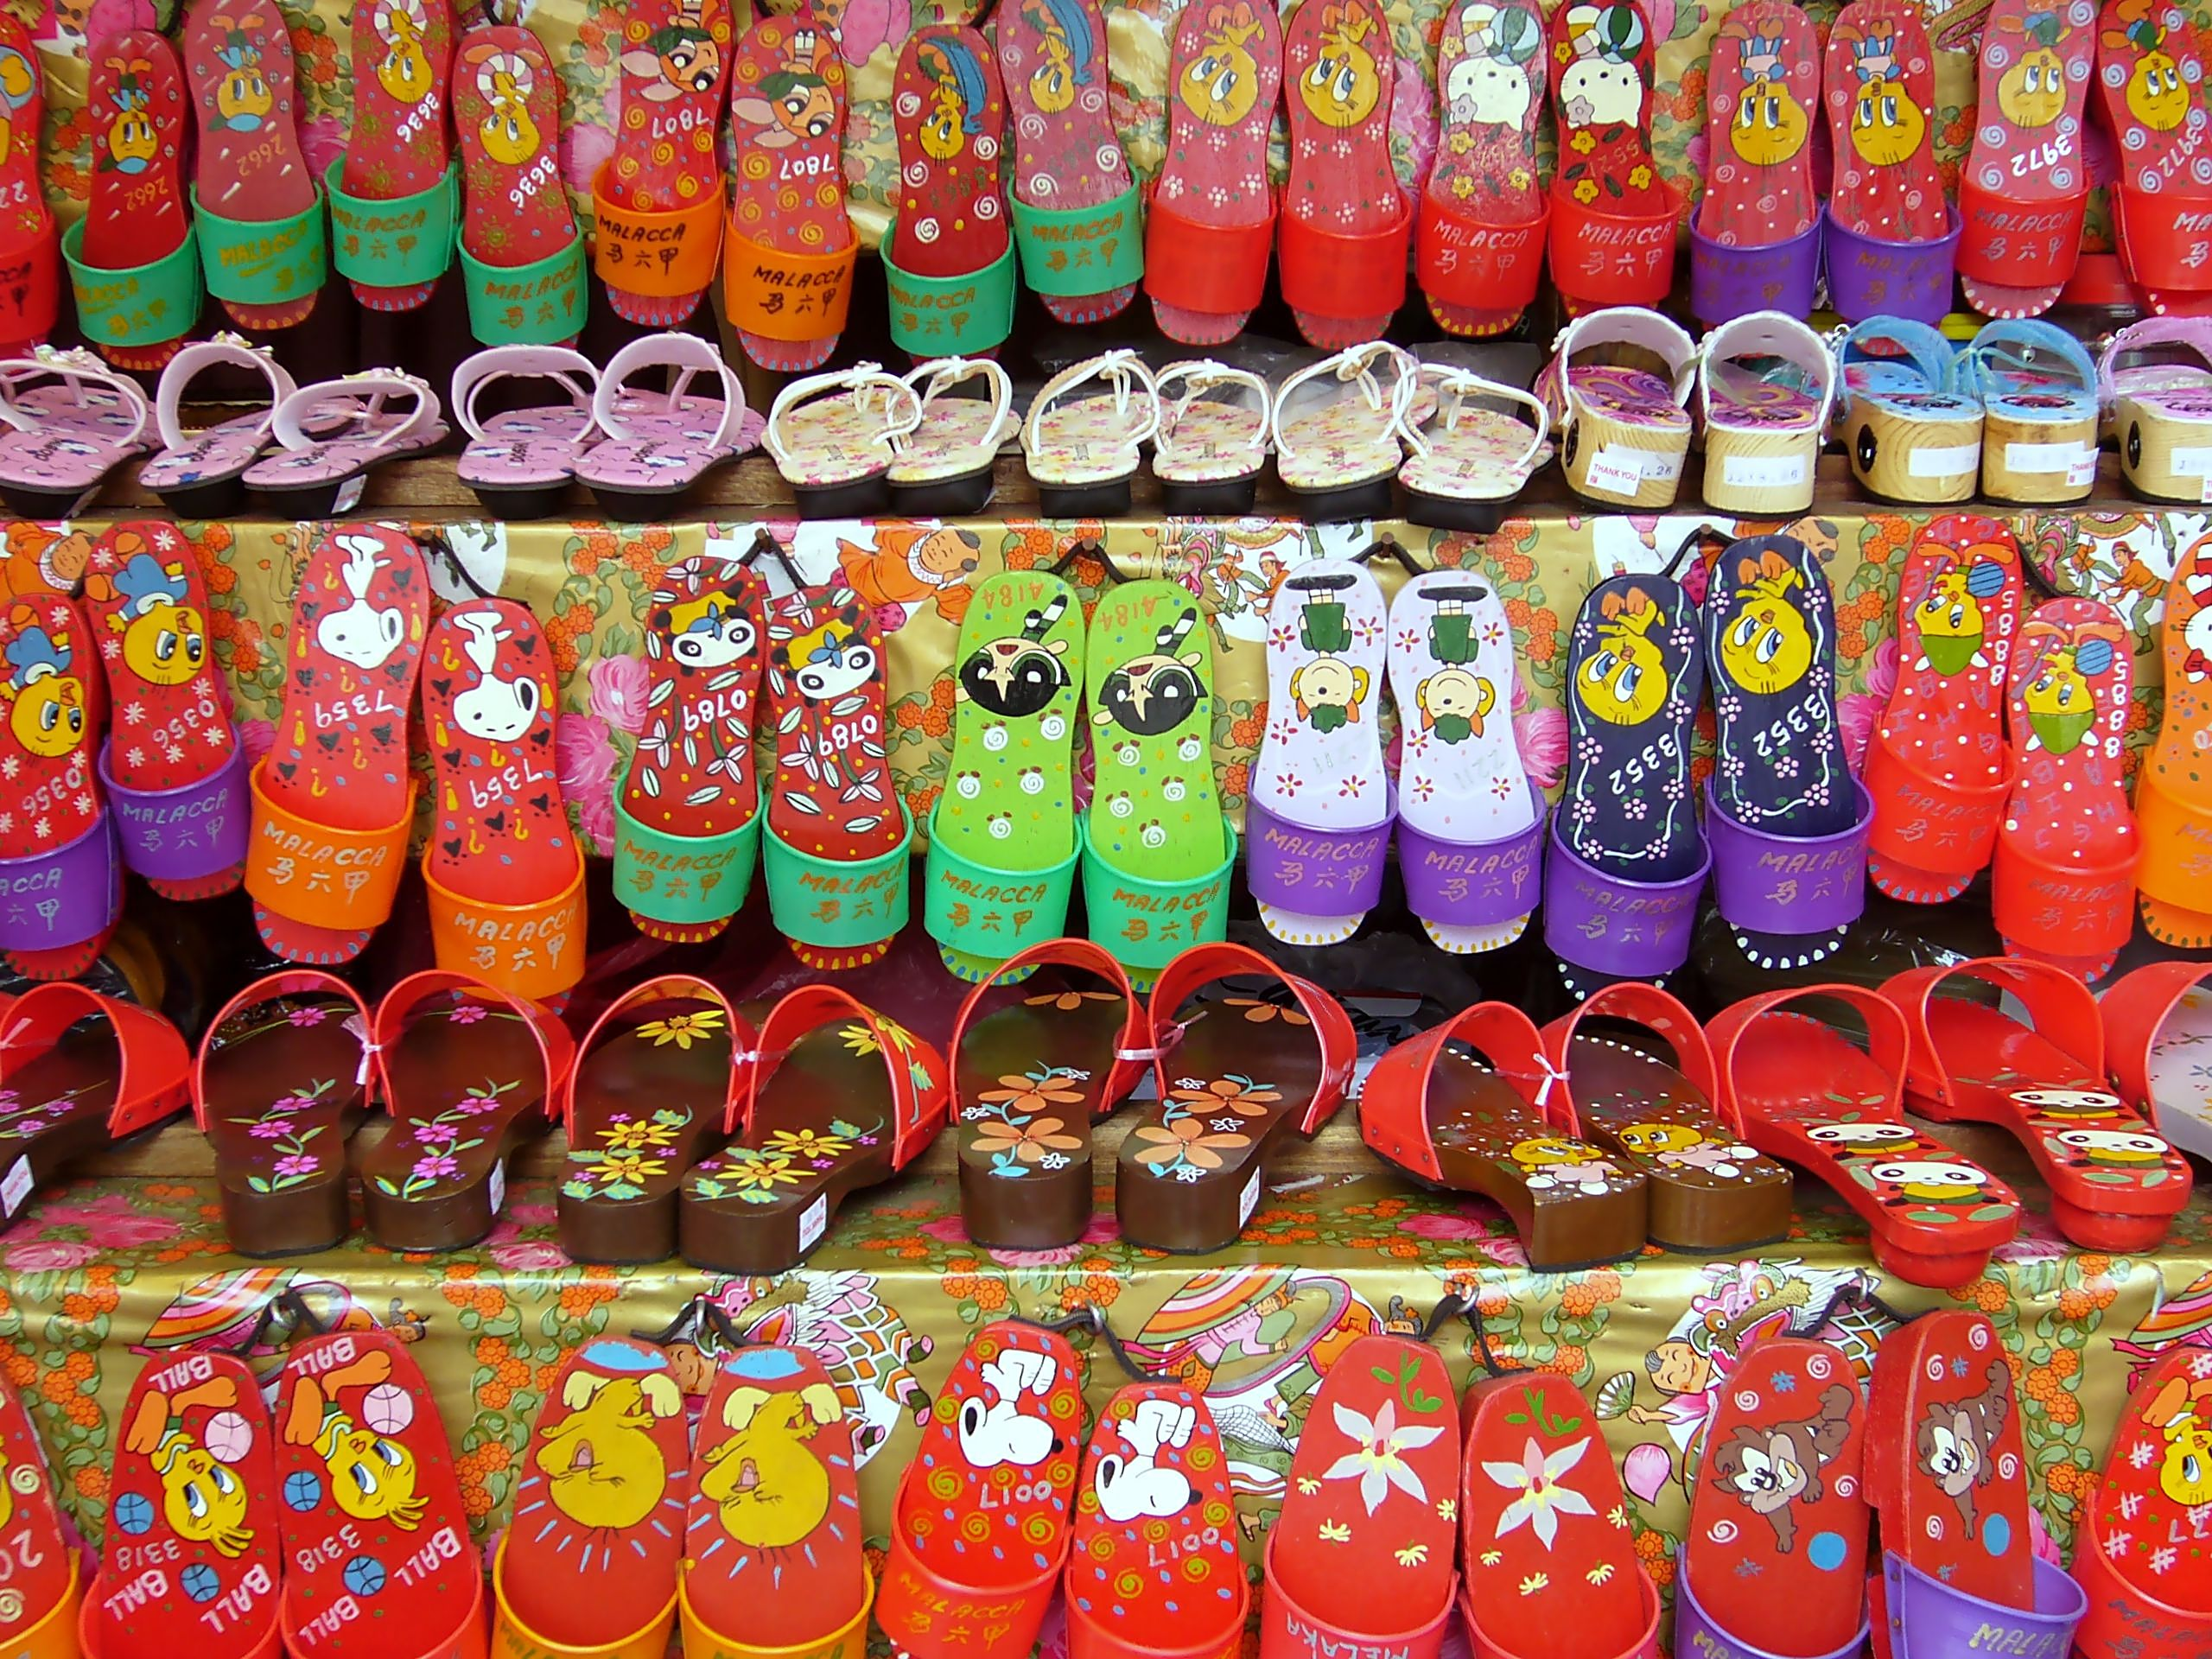 Gifts Malaysia Pictures: File:Clogs, Chinatown, Melaka, Malaysia (181817895).jpg